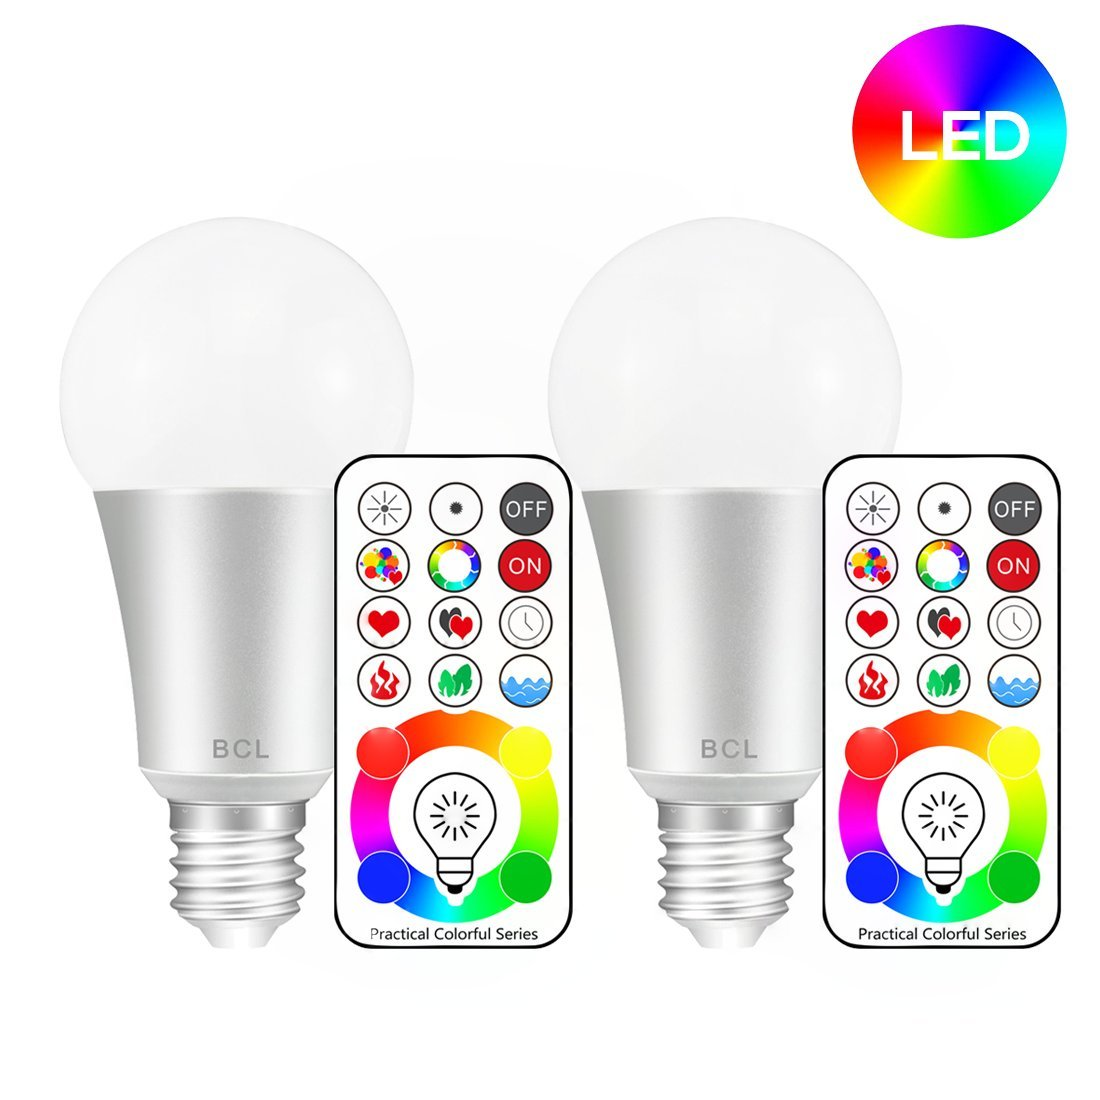 BCL Remote Control LED Color Changing Light Bulb, 60W Equivalent, A19, E26 Base, RBG + Daylight White, Dimmable/Timing/Memory/3 Way Functions Lamp (Pack of 2) Innovative Version